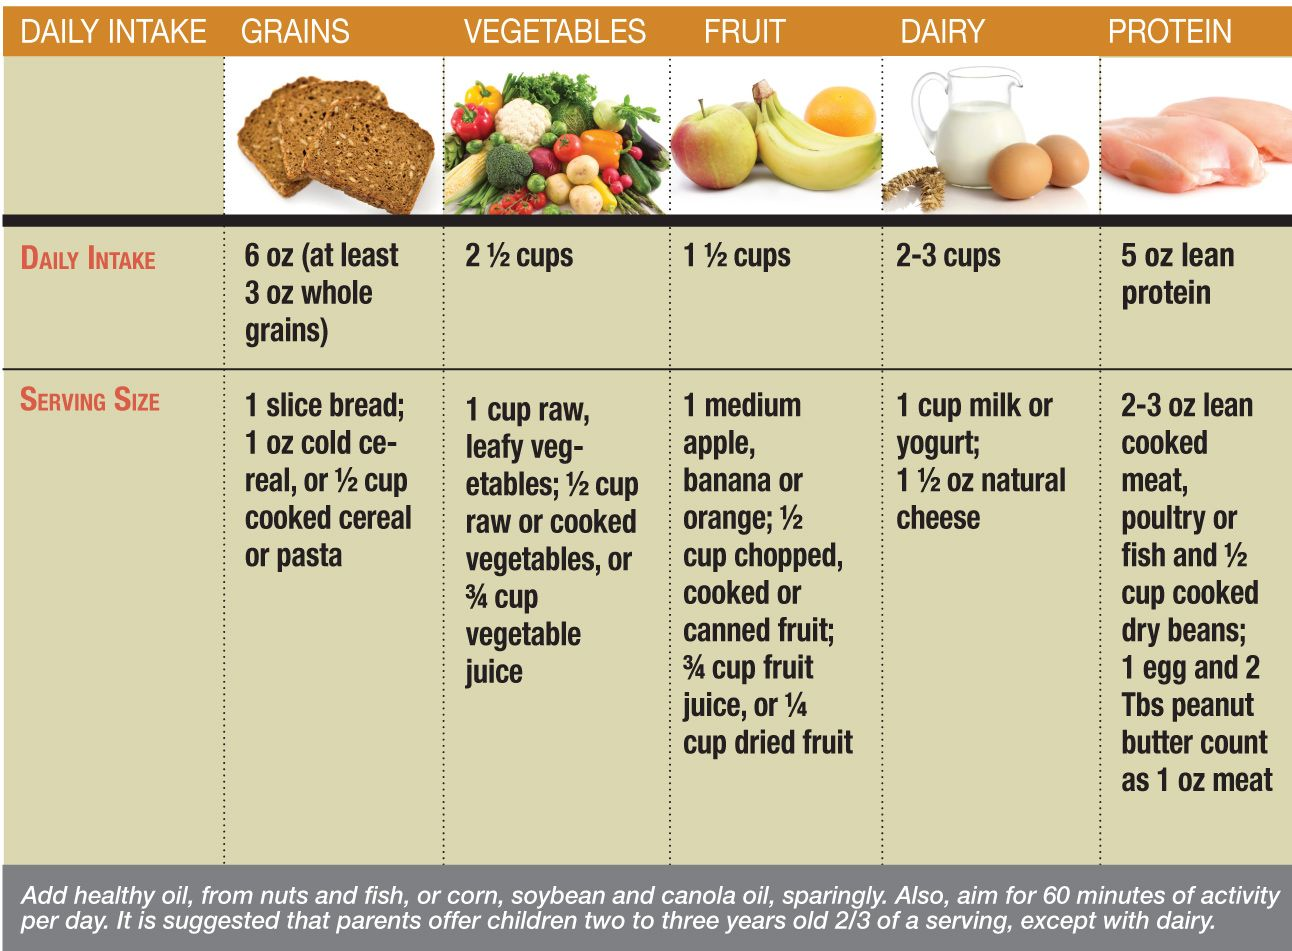 The Atkins Low Carb, High Fat Diet Is Supposed To Be Simple,